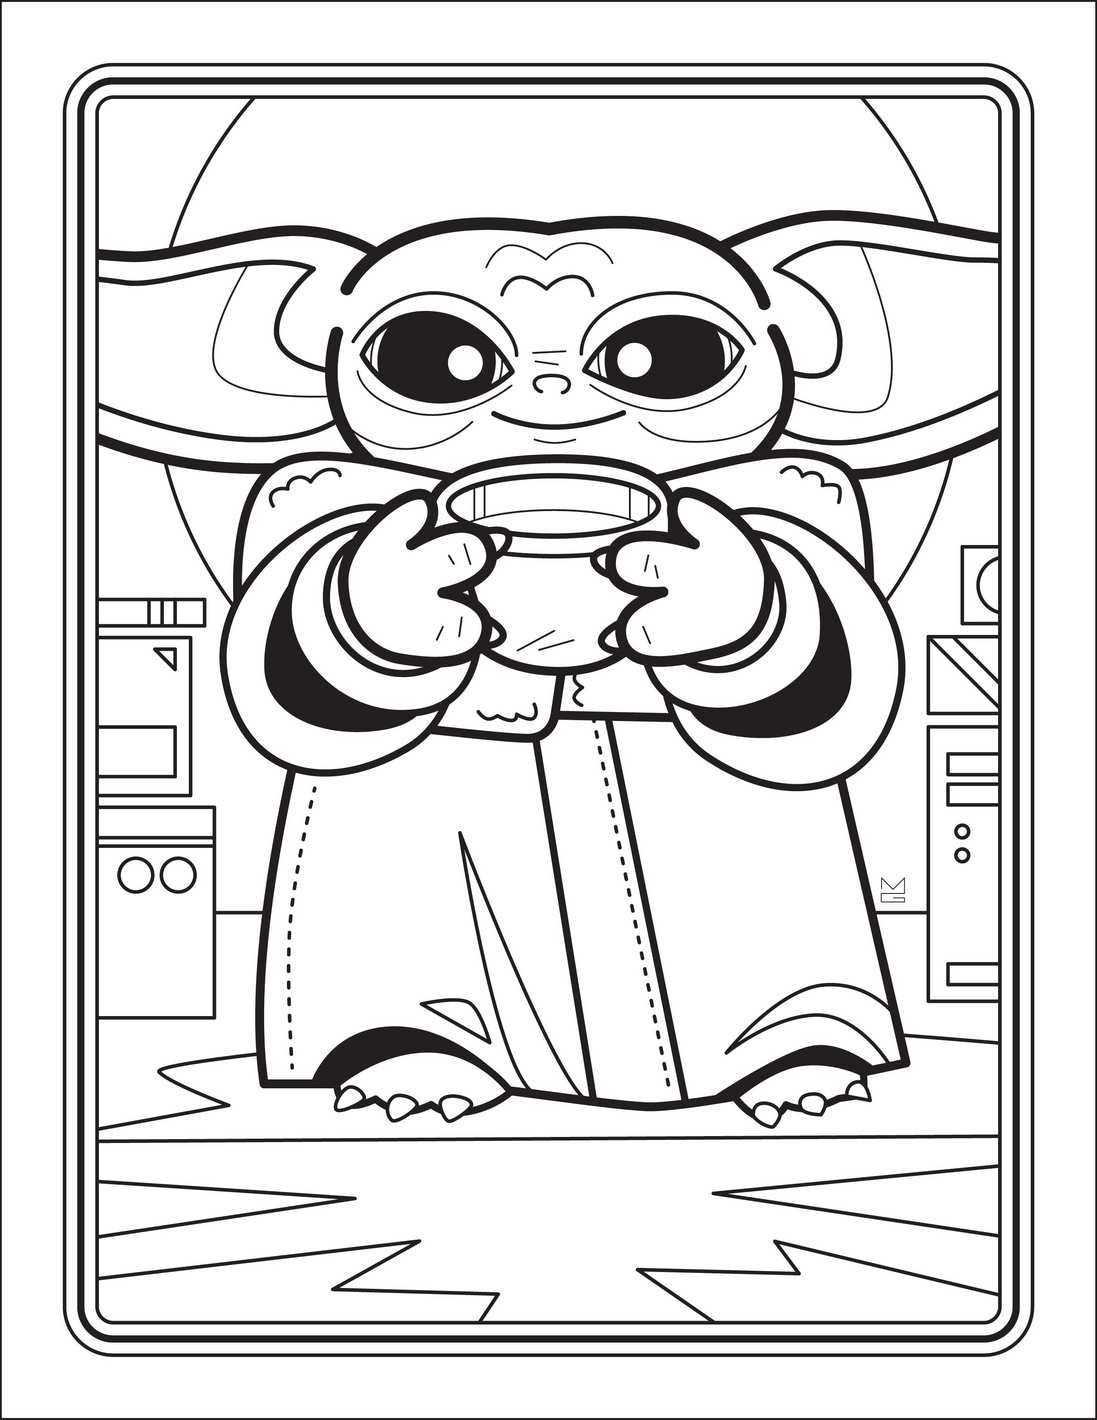 The Unofficial Baby Yoda Coloring Book In 2020 Free Coloring Pages Coloring Books Star Wars Colors